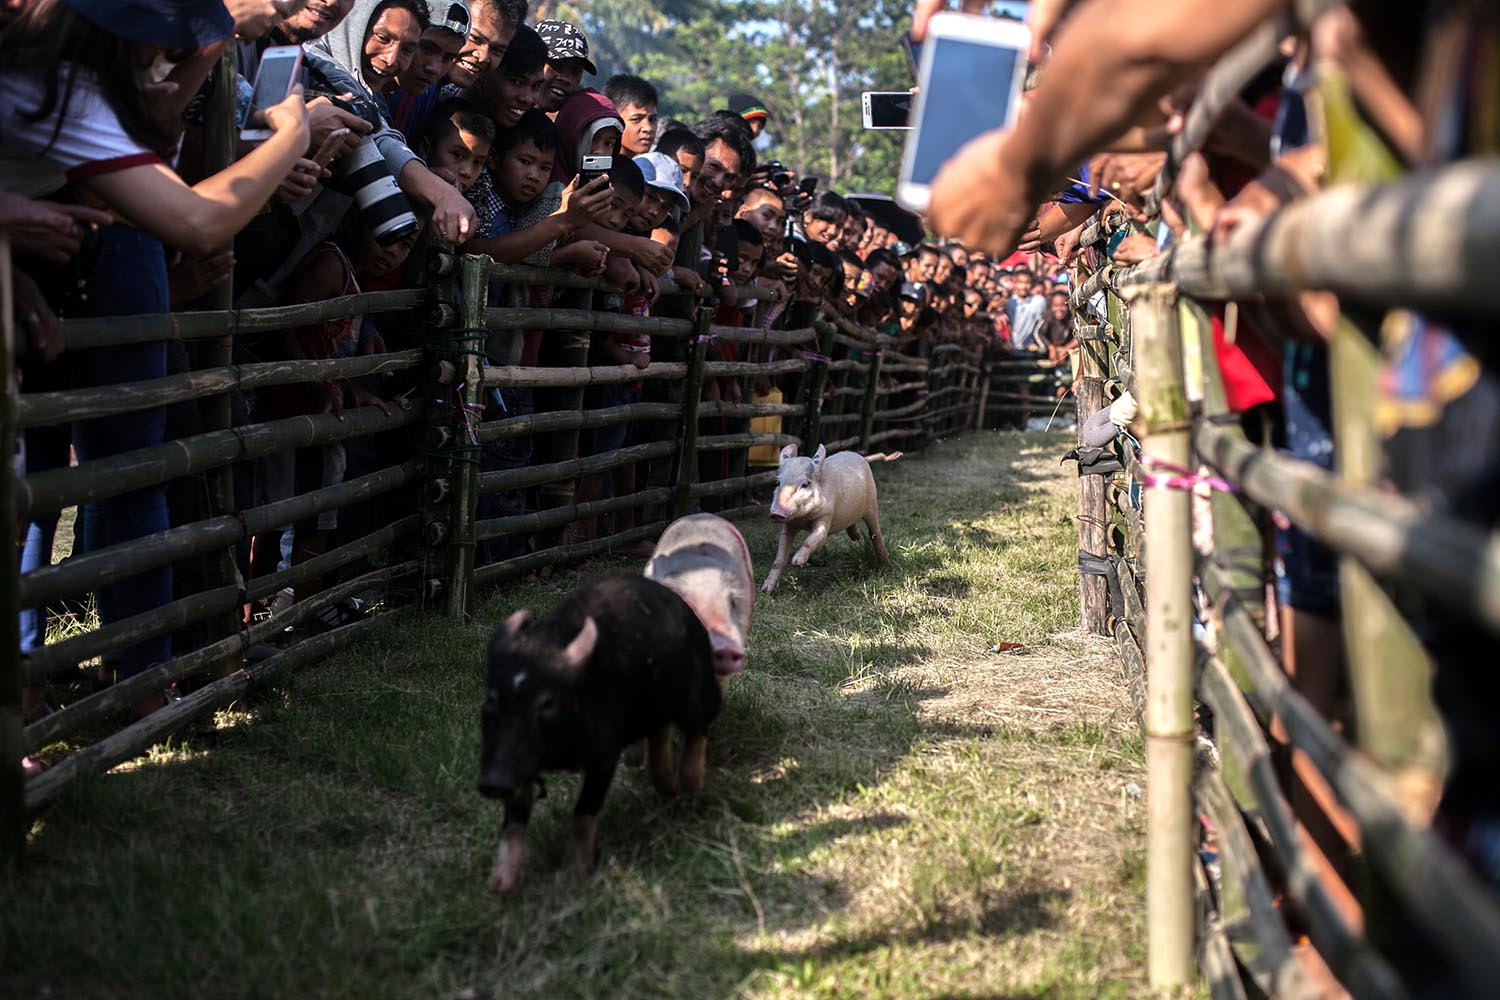 Faster, harder: Spectators watch the pig race competition. JP/Andri Ginting